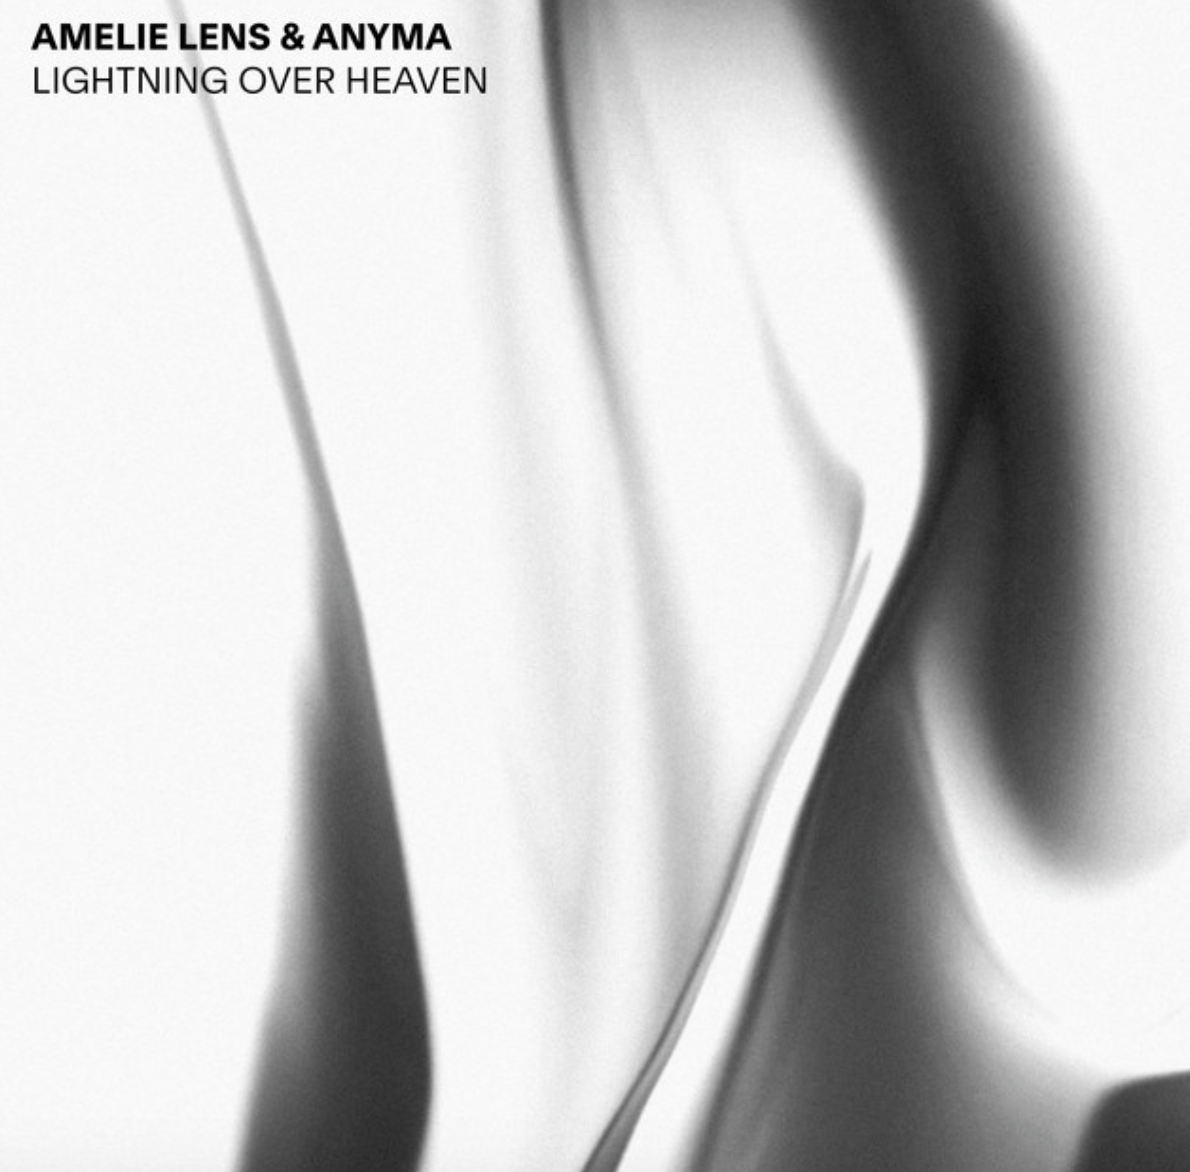 Amelie Lens & Anyma Collab on 'Lightning Over Heaven,' Featured in Fashion Show